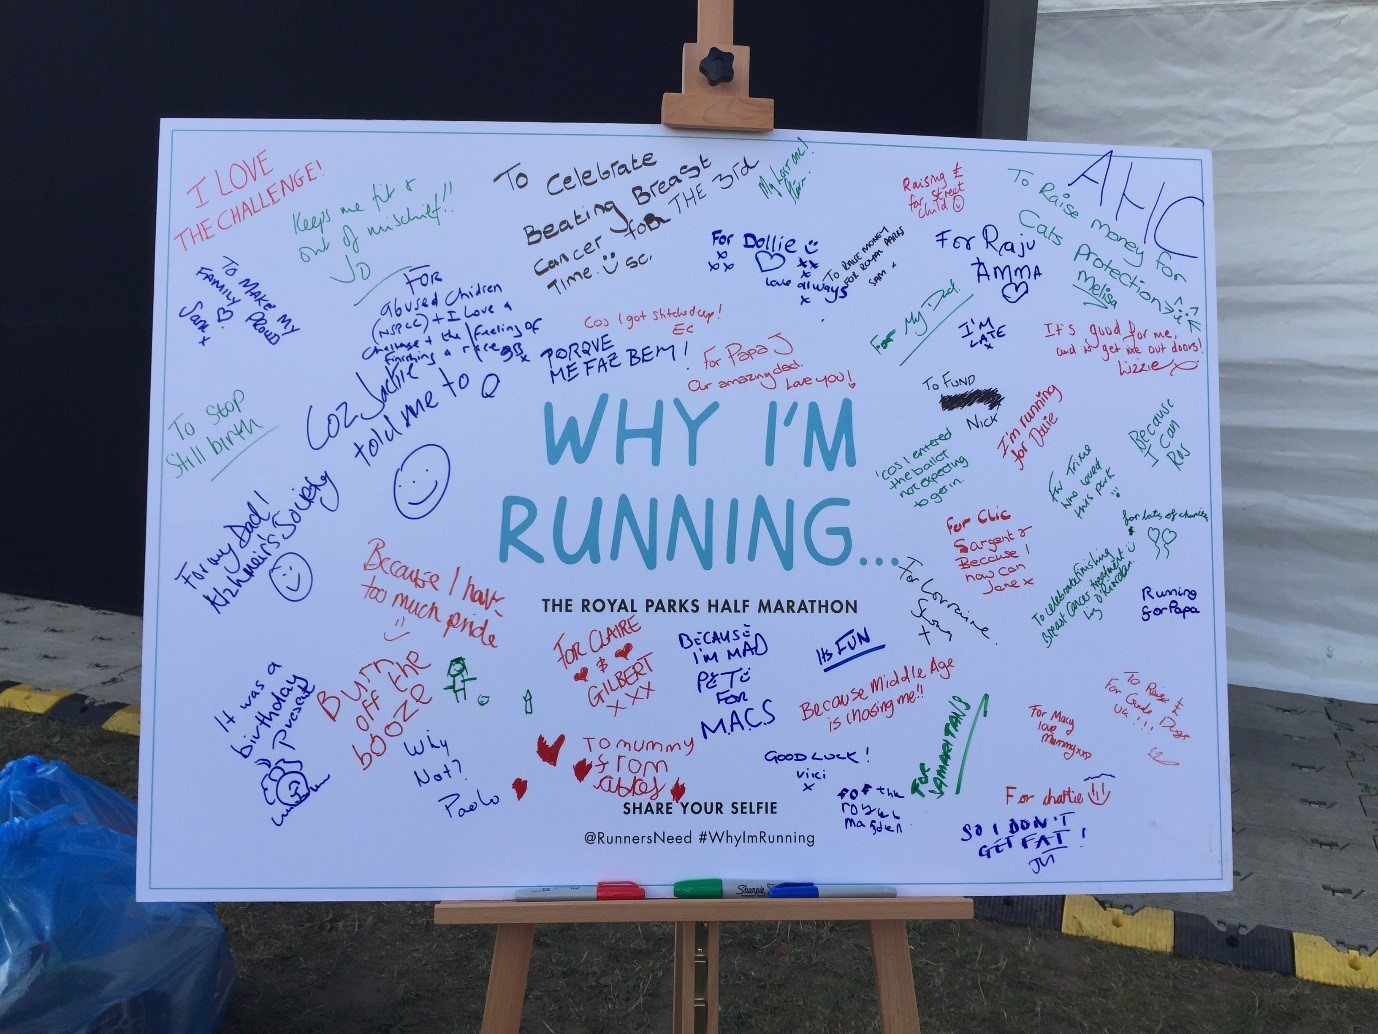 Race Village + Why I'm Running + #whyimrunning